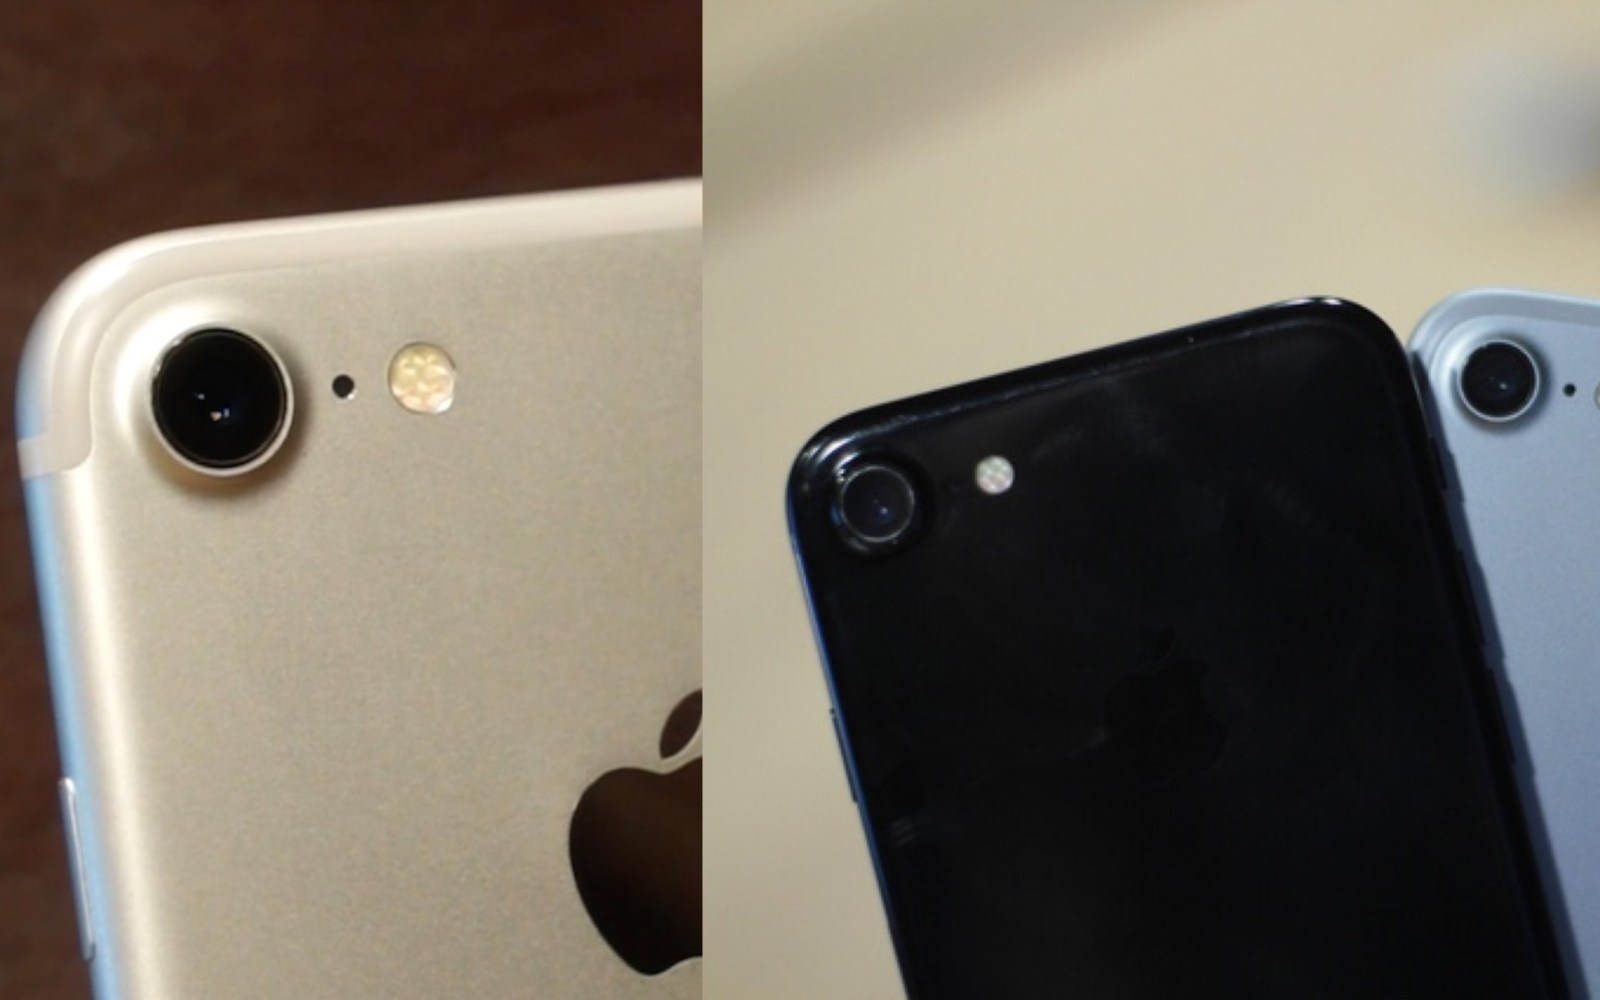 Final iPhone 7 leaks before official unveiling show new black color, redesigned LED flash and waterproofed SIM tray